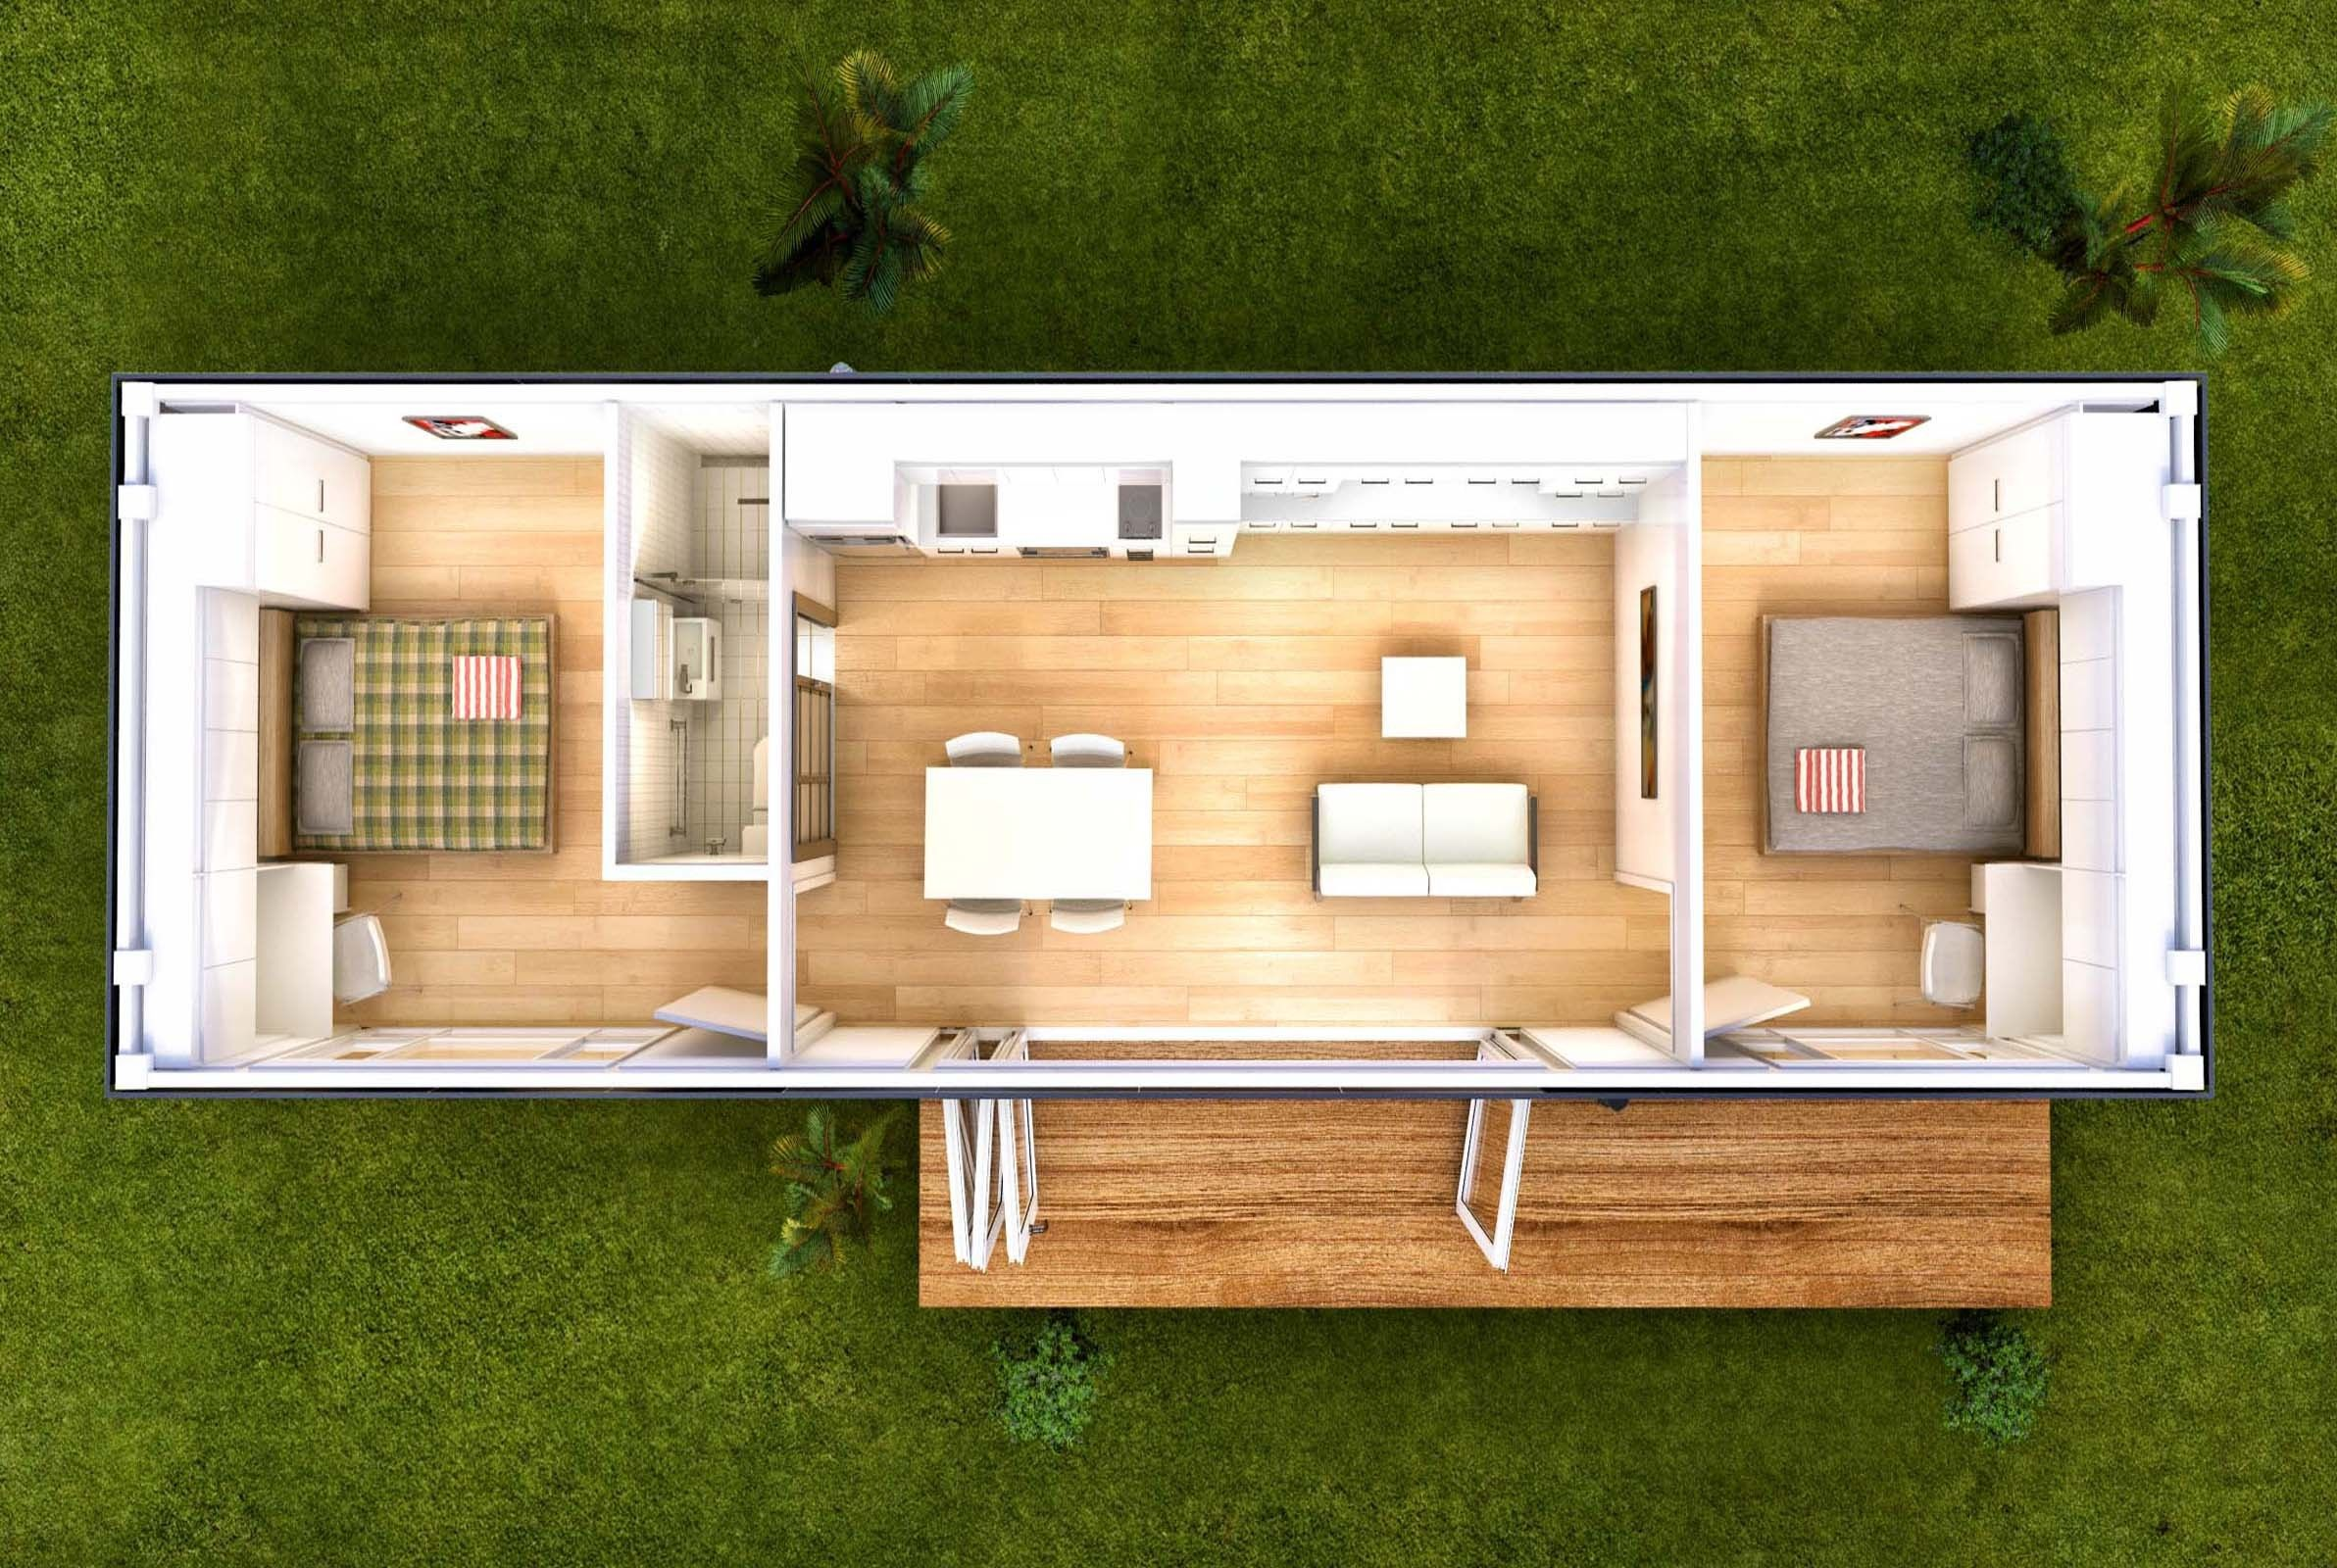 Container Homes Design Plans Property container home designs for sale at florida container prefab